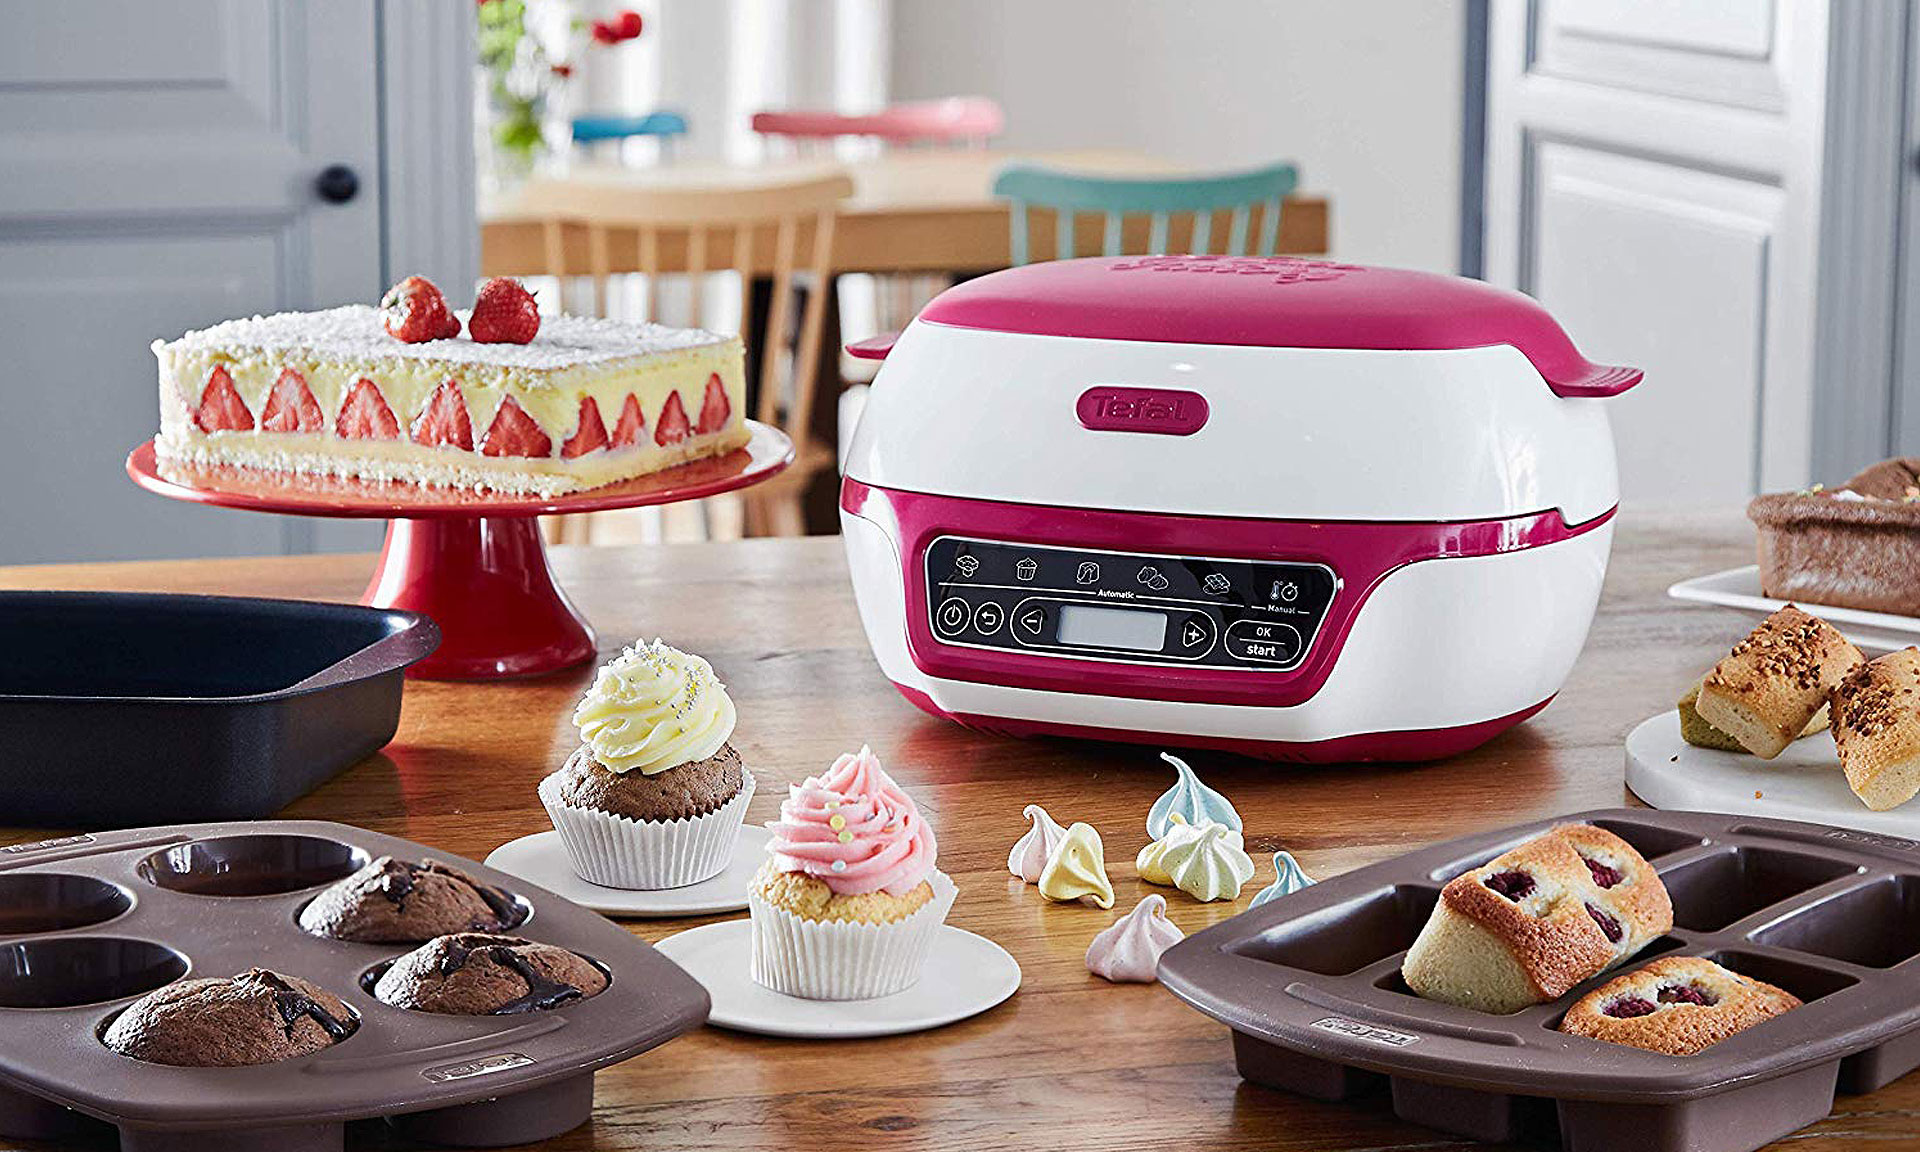 Tefal Cake Factory Can This Baking Machine Make Perfect Cakes